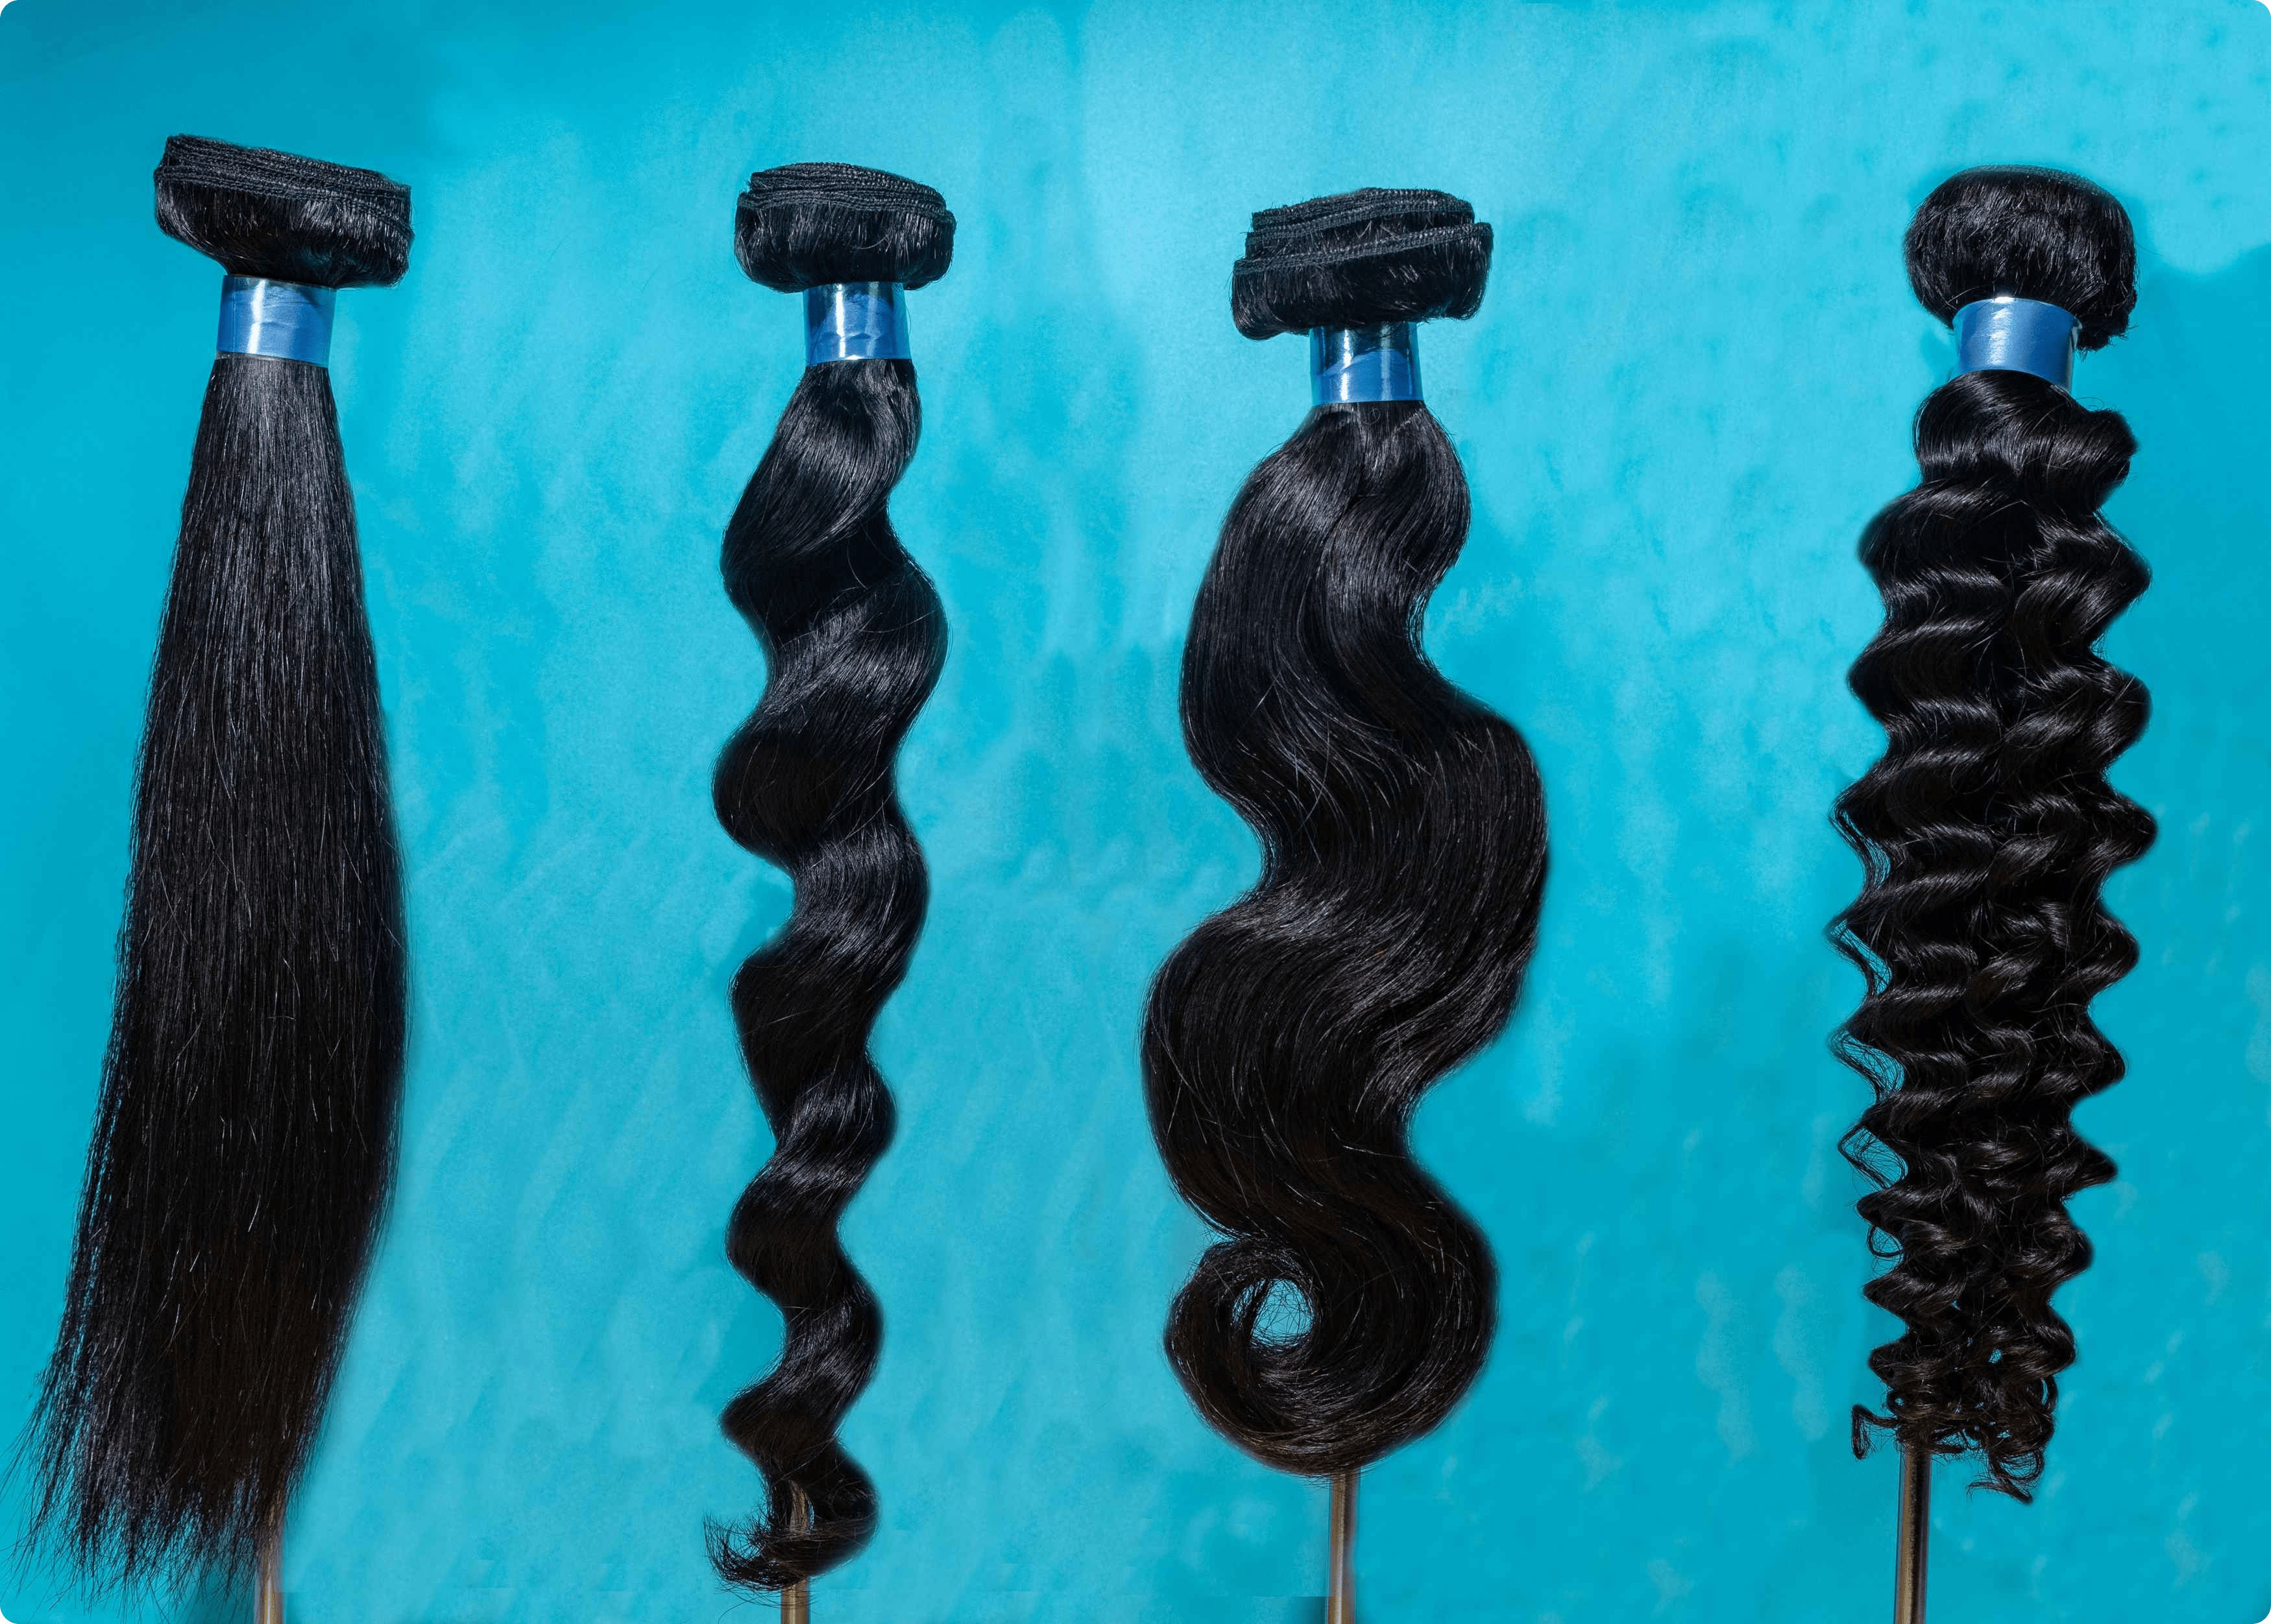 How to import hair from China